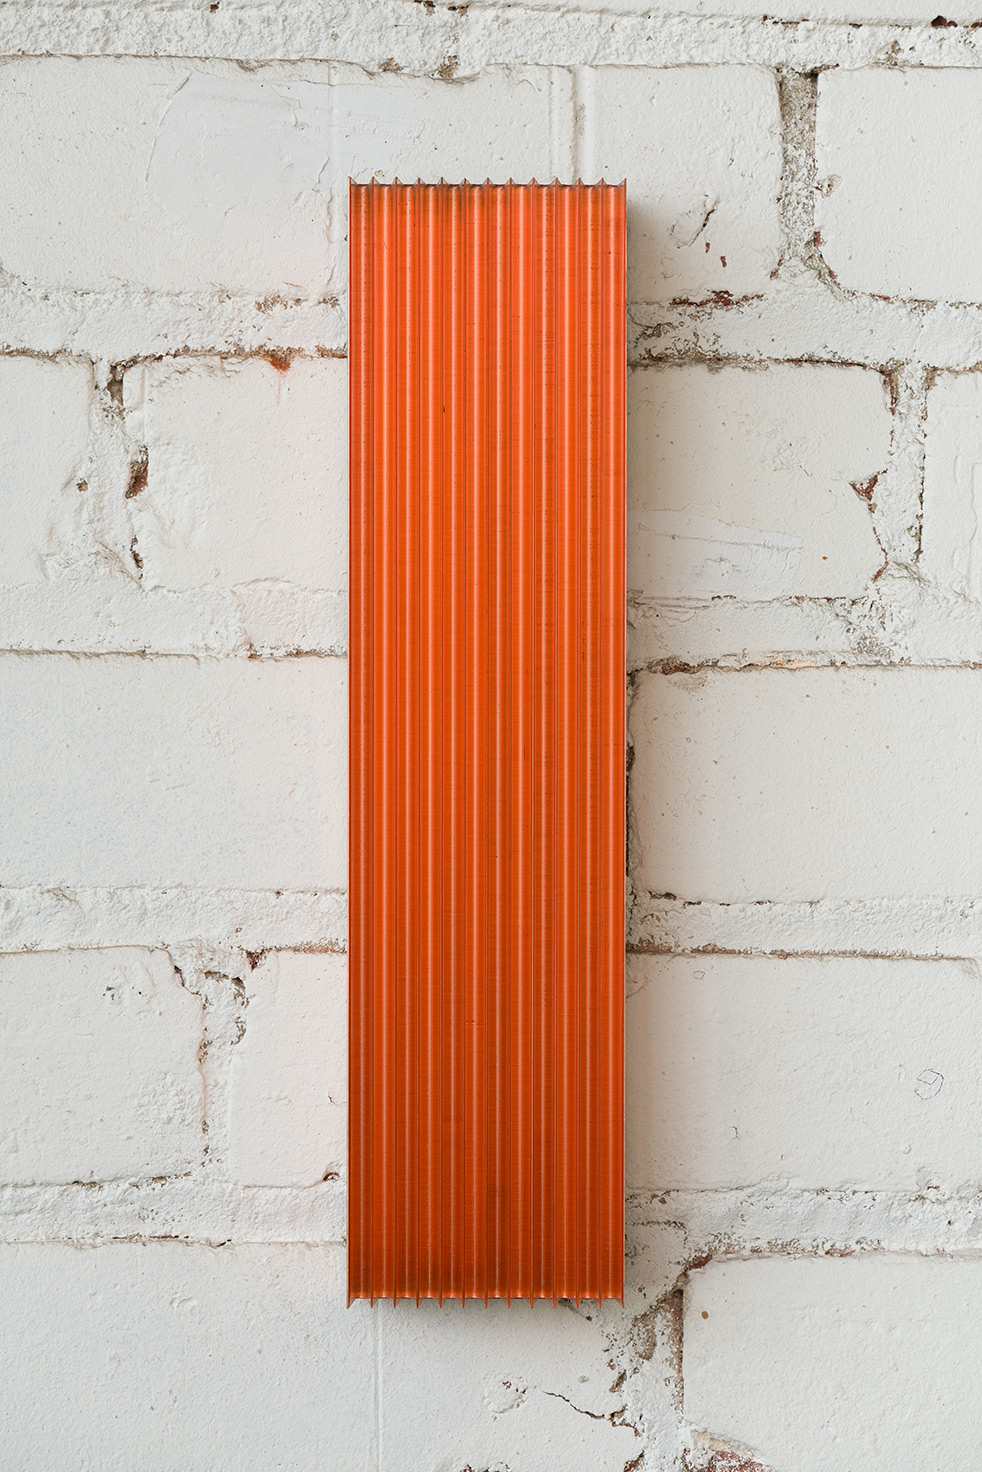 Roy Thurston, 2012-1, 2015, Milled copper with clear acrylic polyurethane, 12 x 3 x 1.375 inches